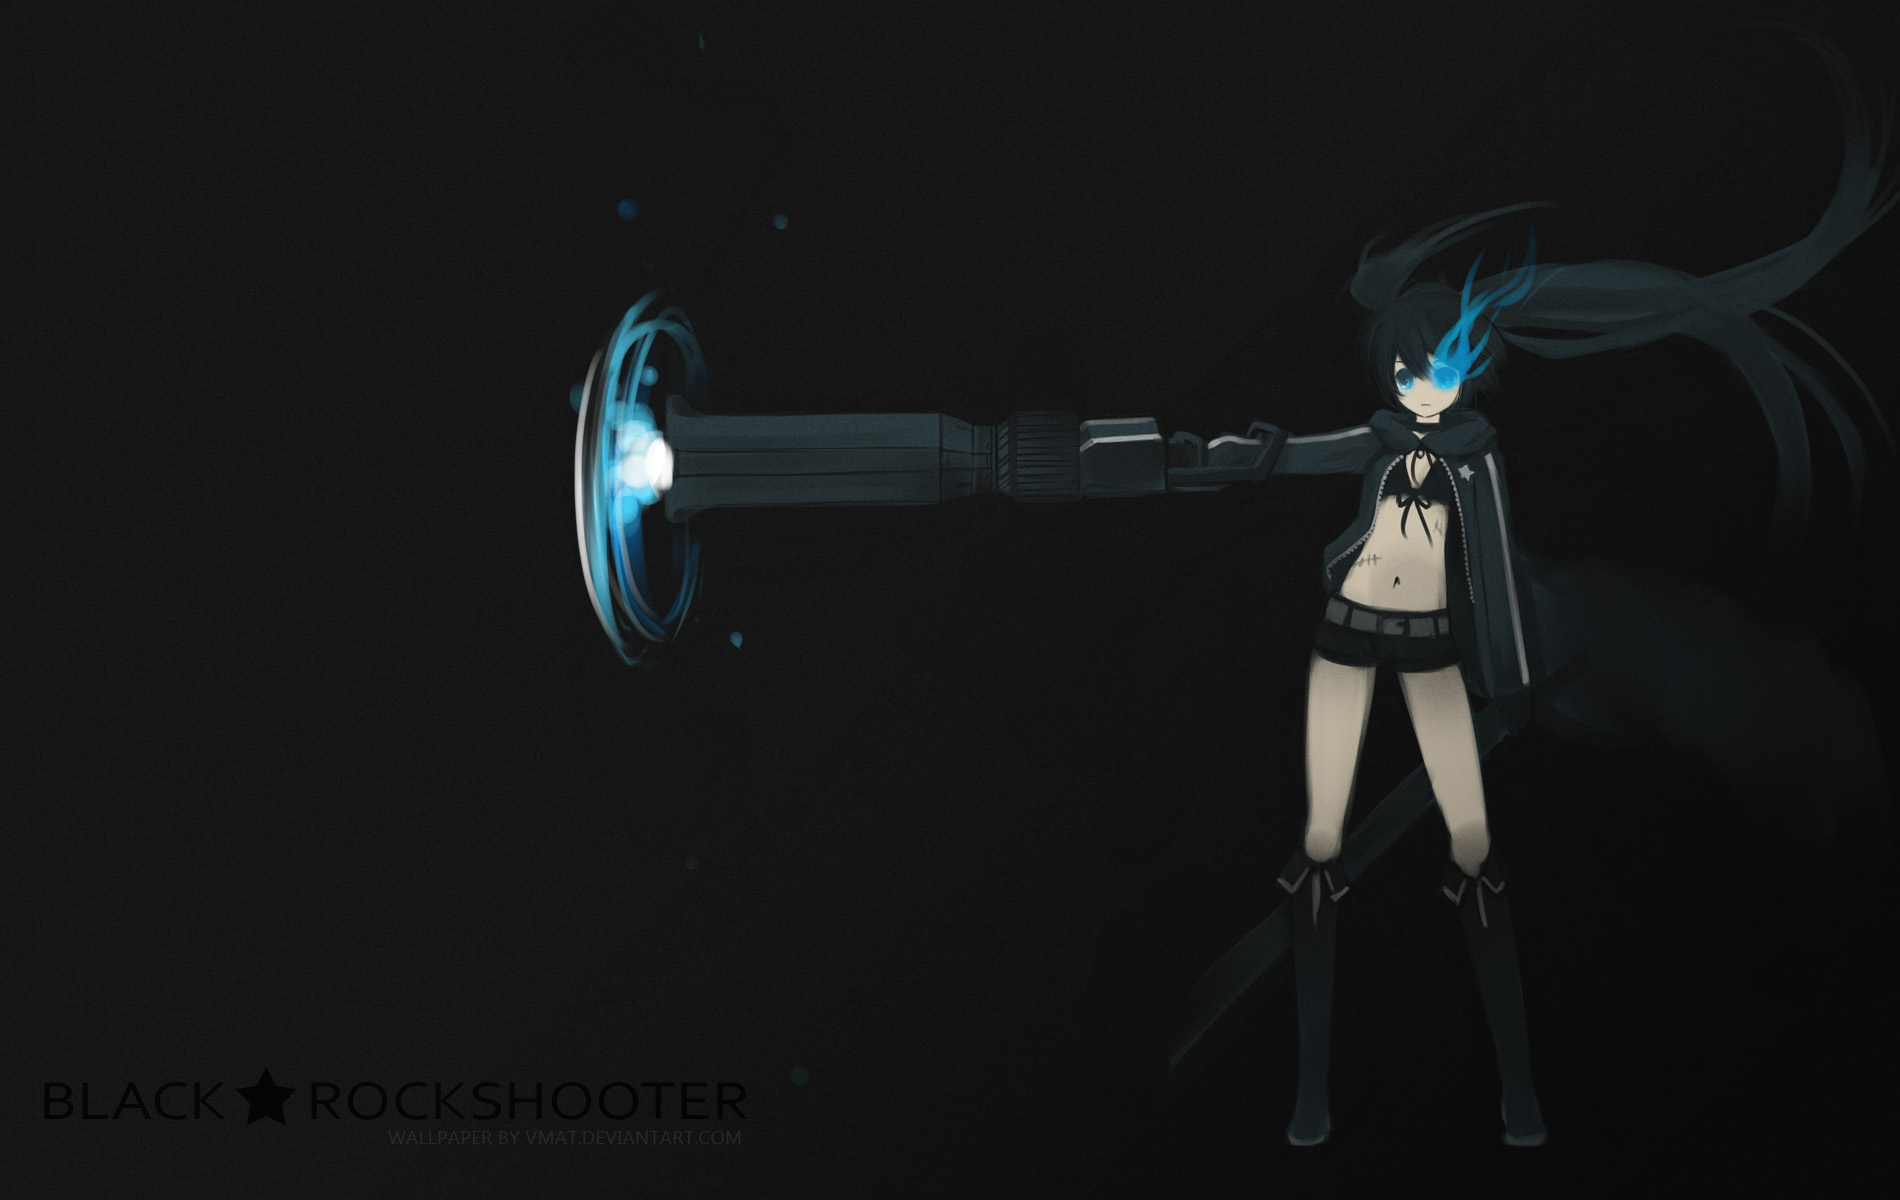 BRS Wallpaper by vmat